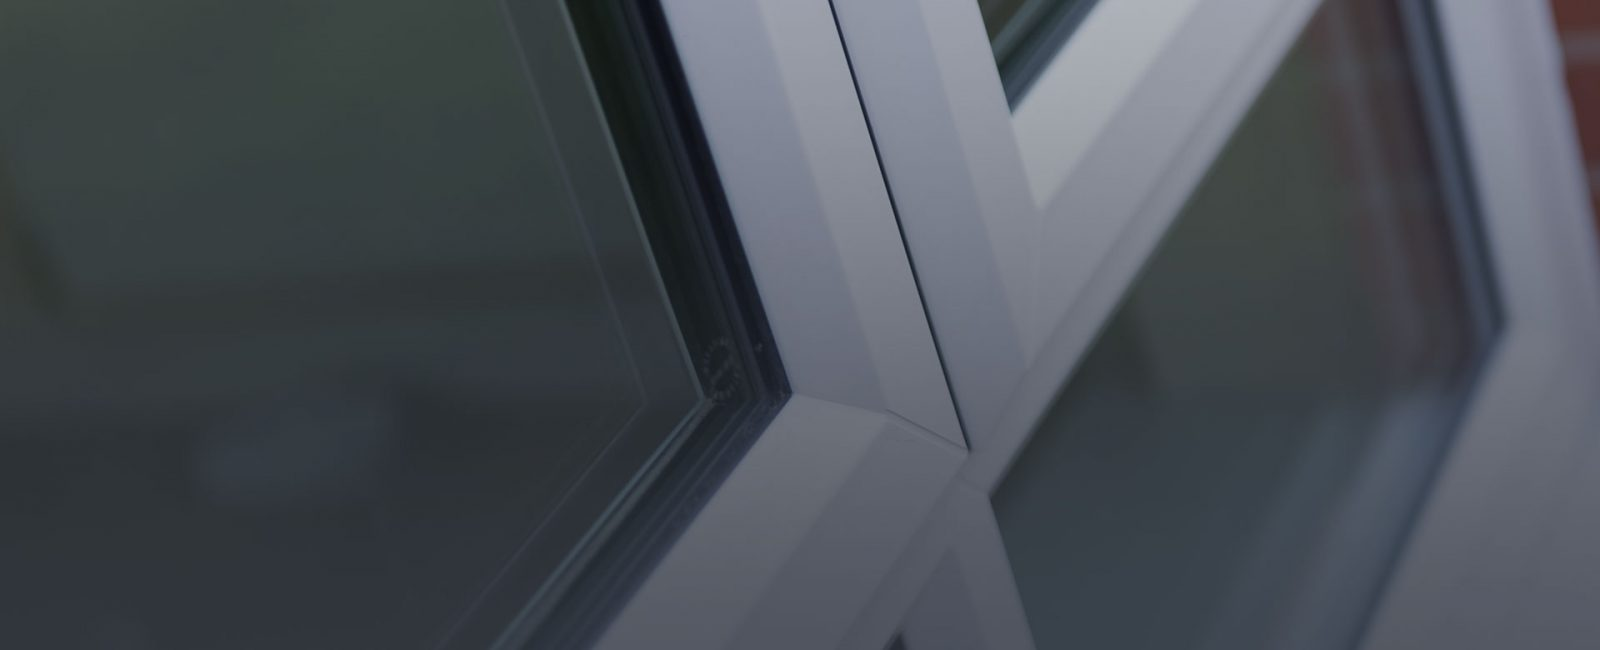 Commercial Glazing Suppliers